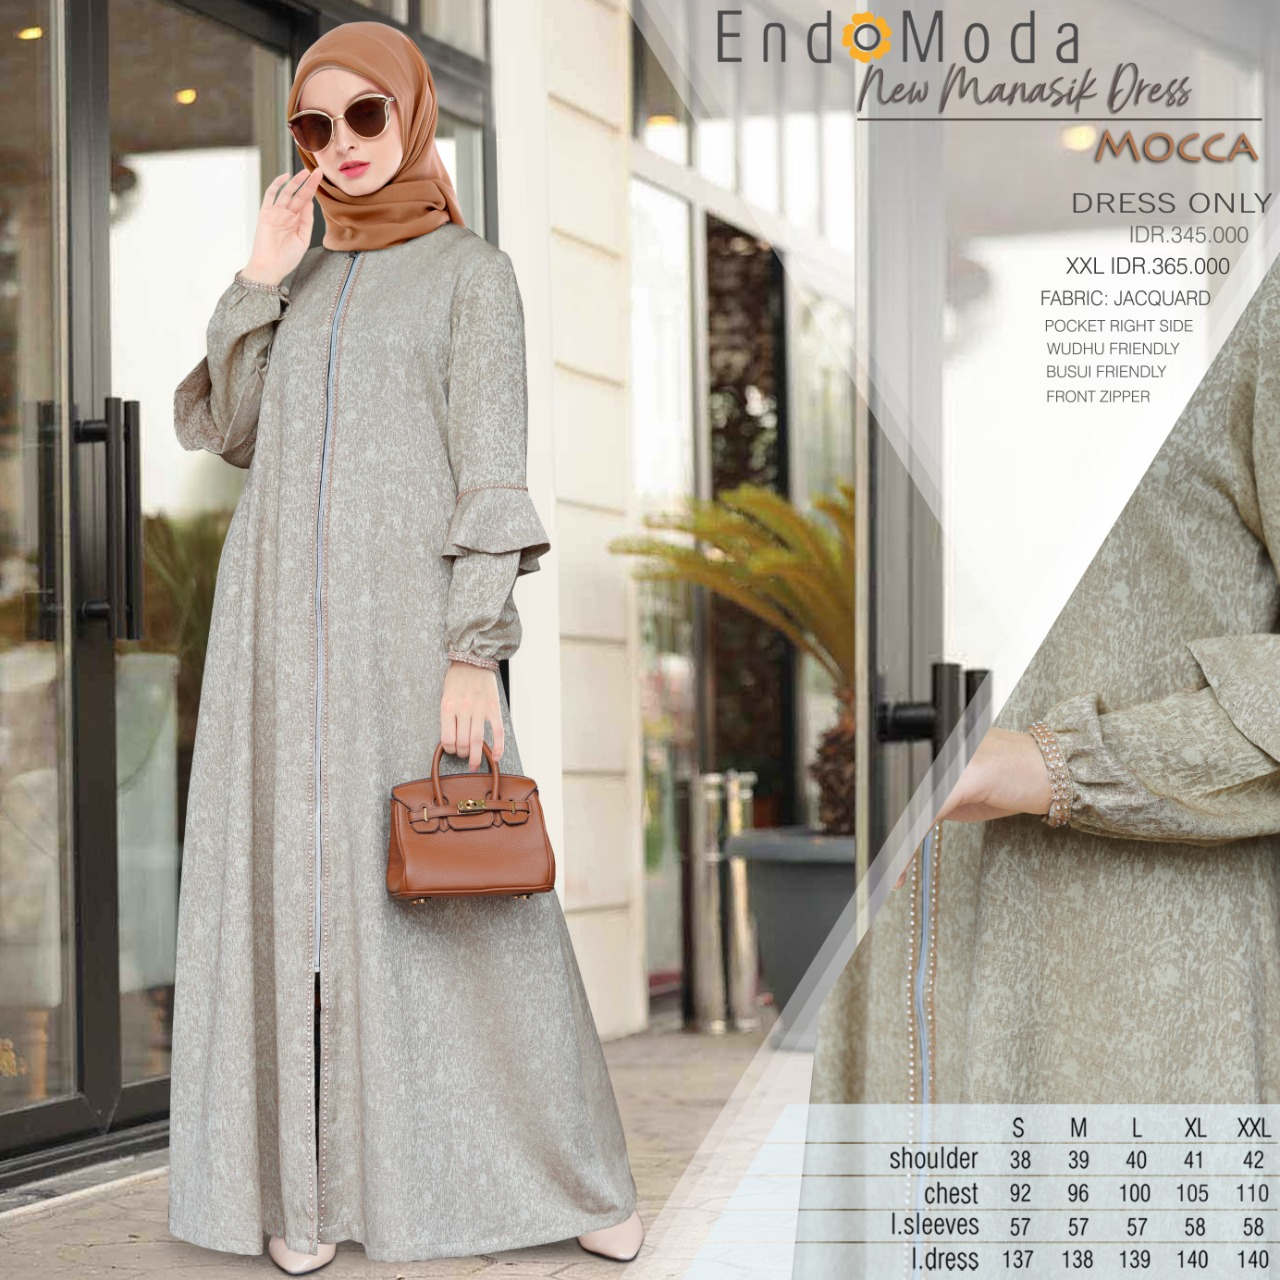 Gamis Endomoda New Manasik Dress Mocca